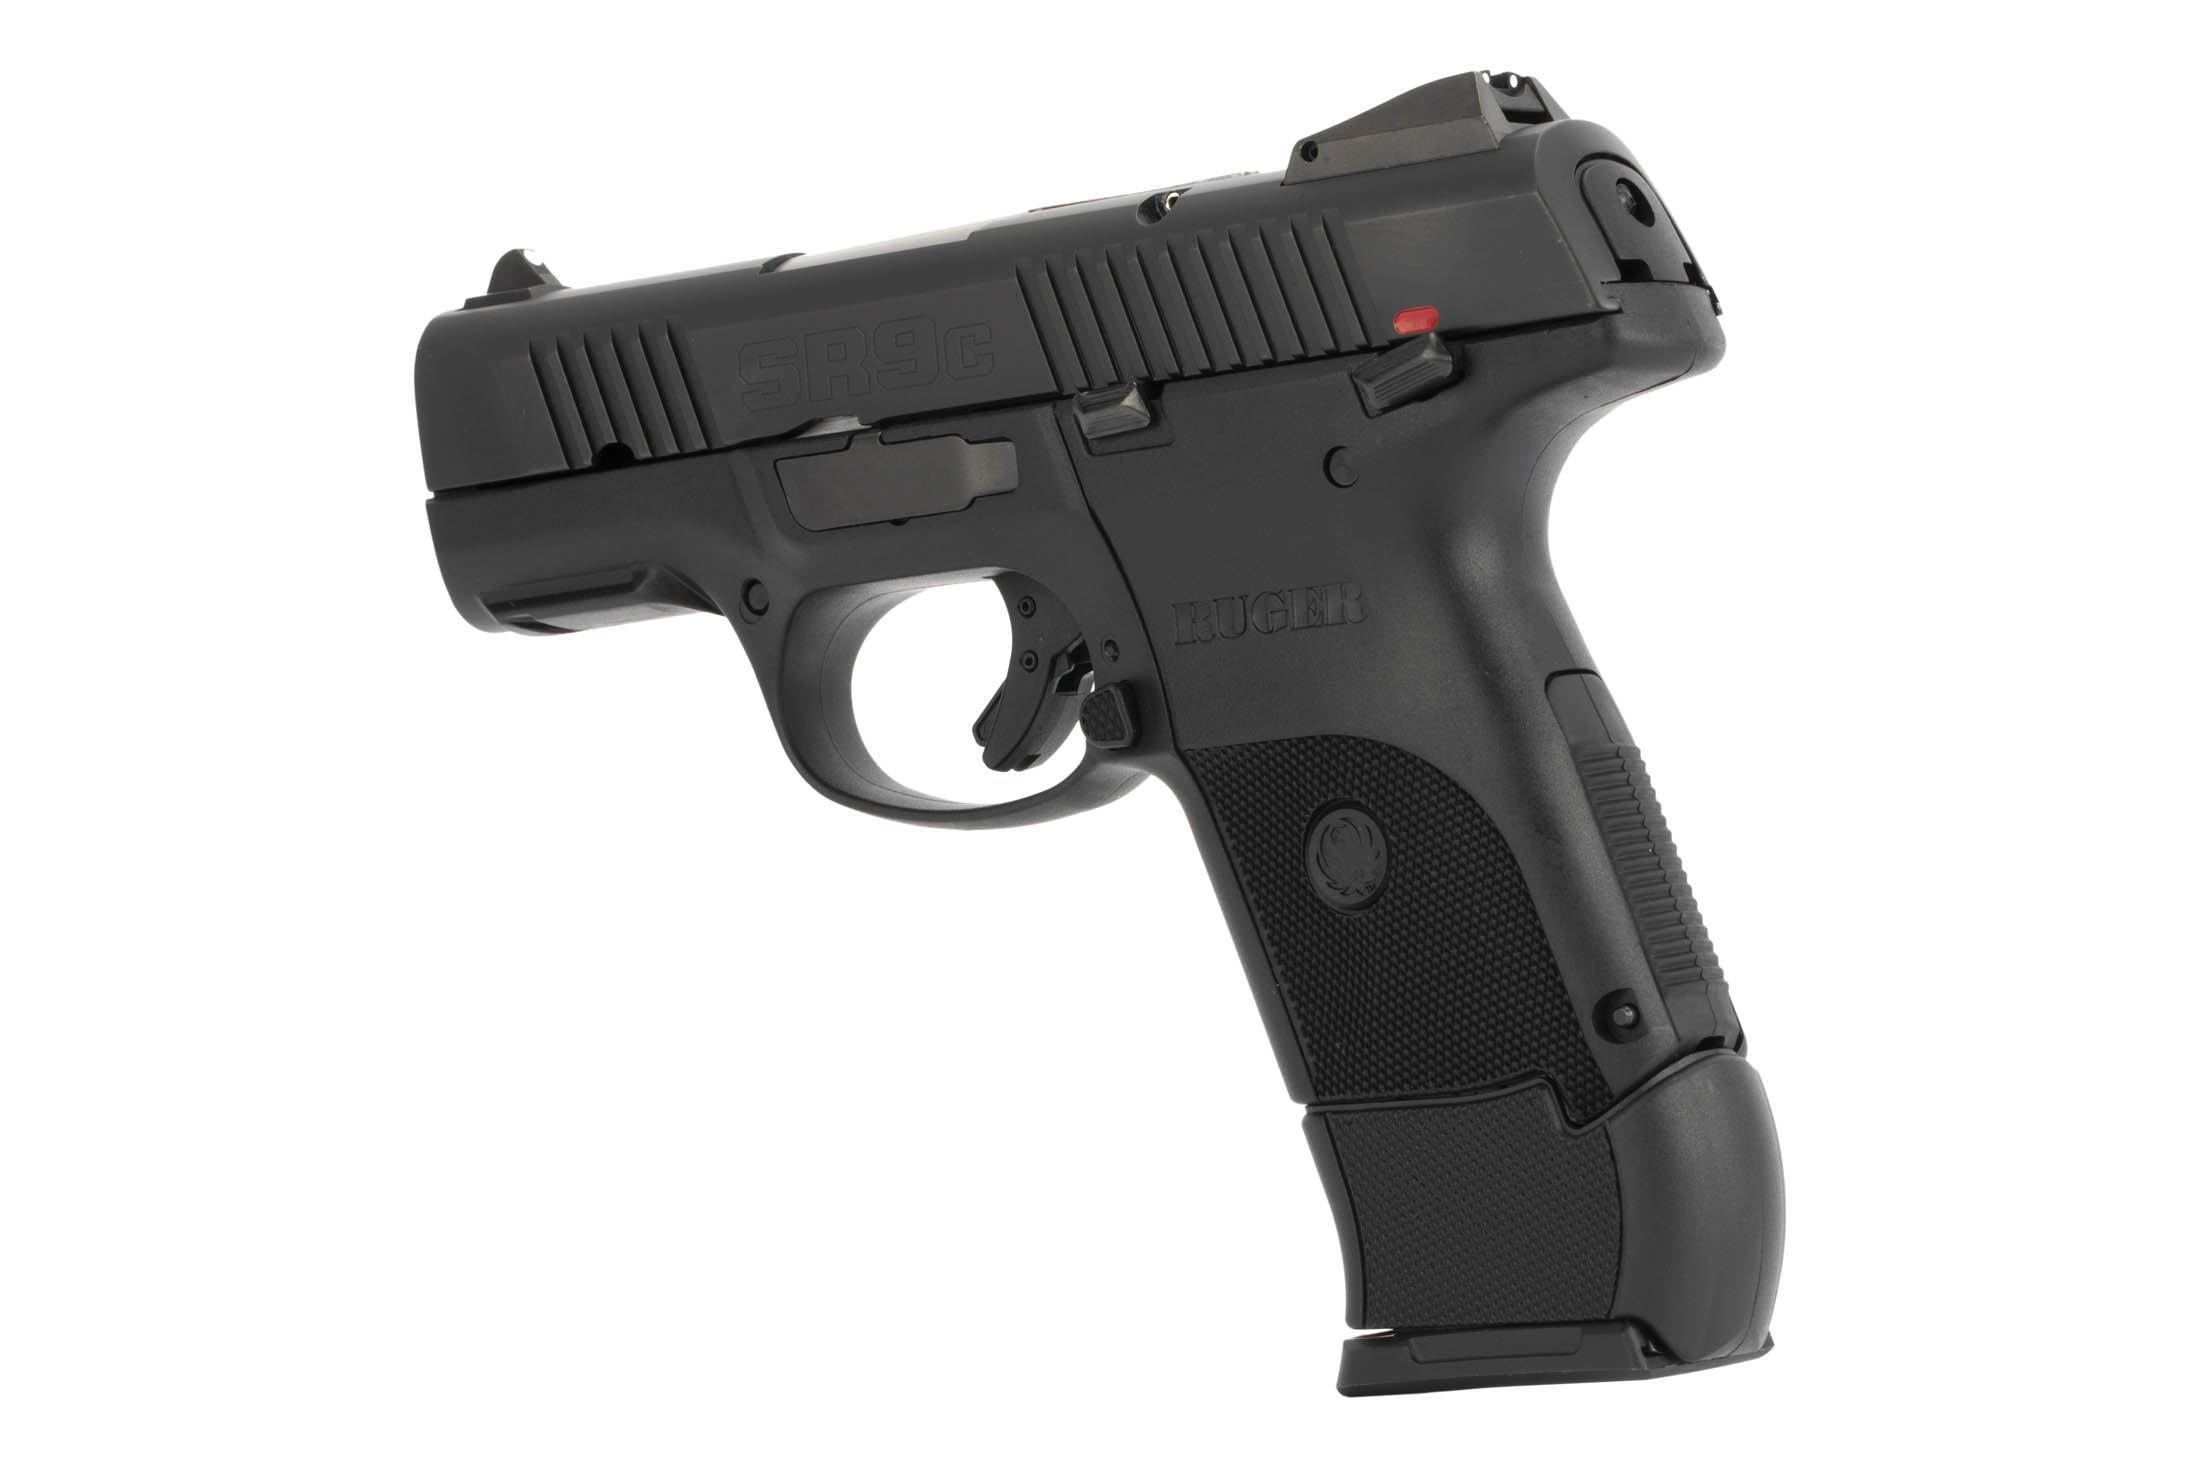 The Ruger SR9c features an extended magazine for increased grip surface area